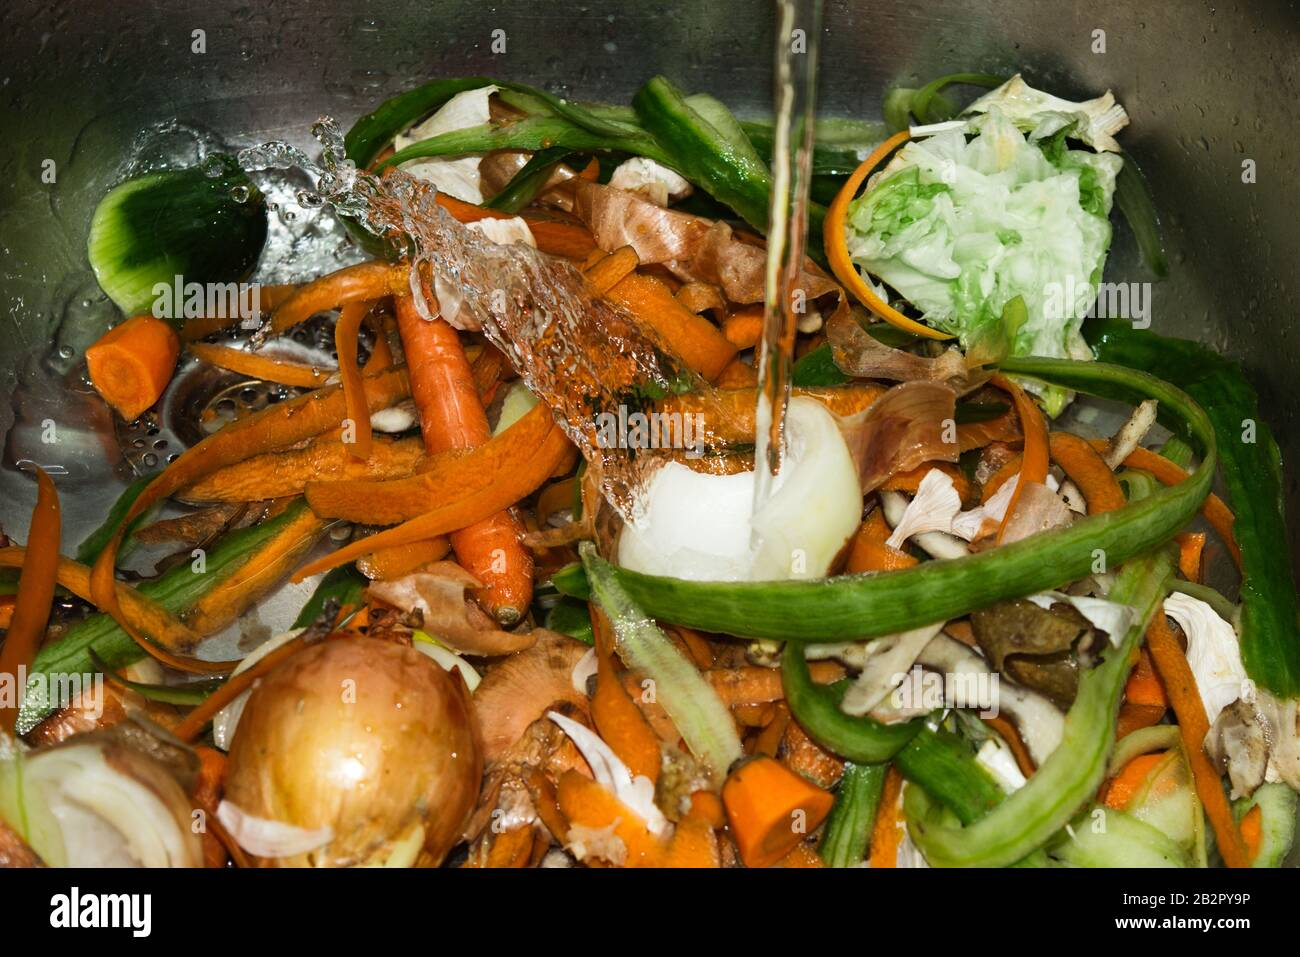 Kitchen waste vegetables Stock Photo